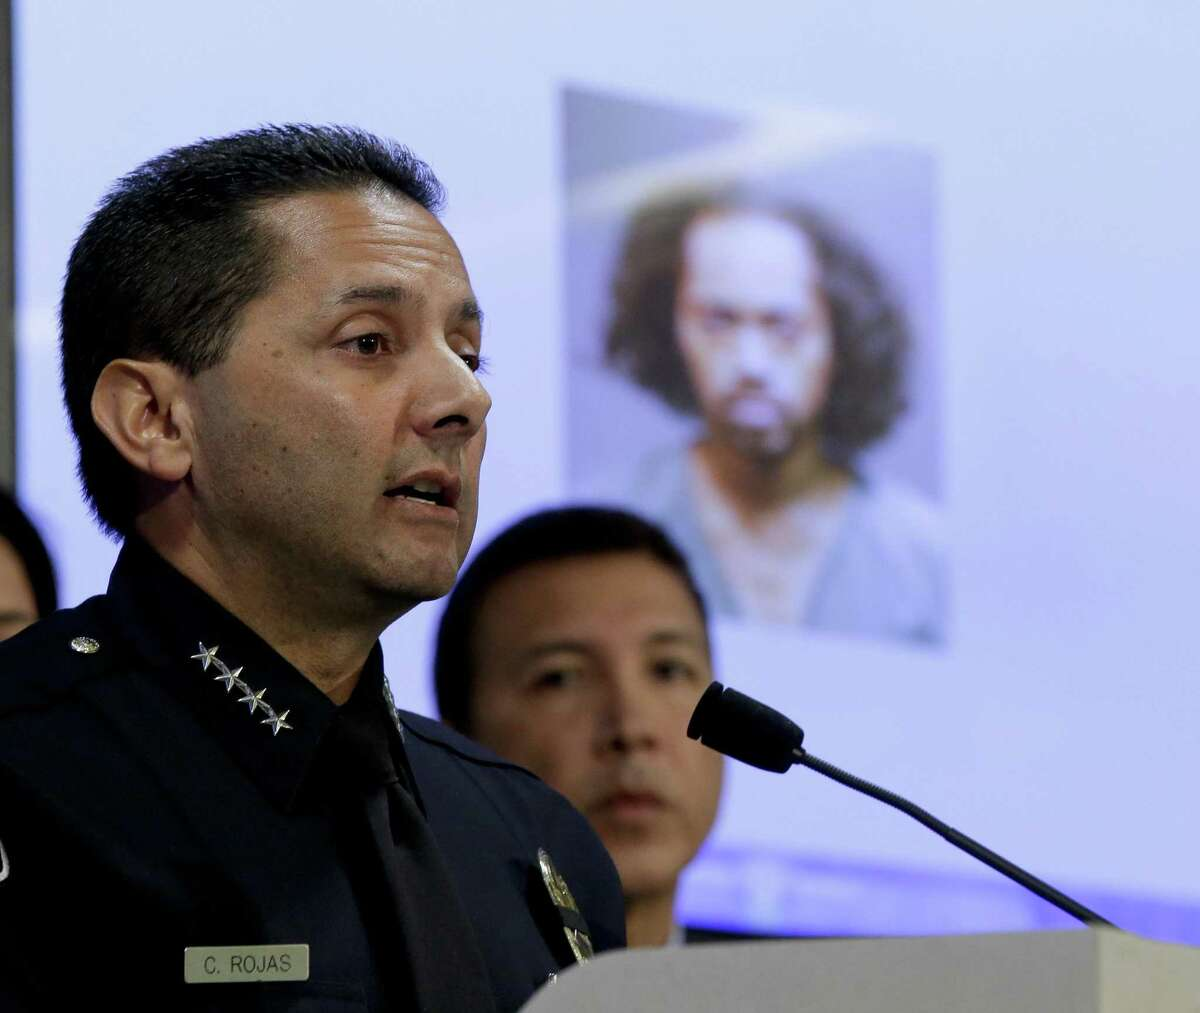 Carlos Rojas, a veteran of the Santa Ana police force, will is BART's new police chief.